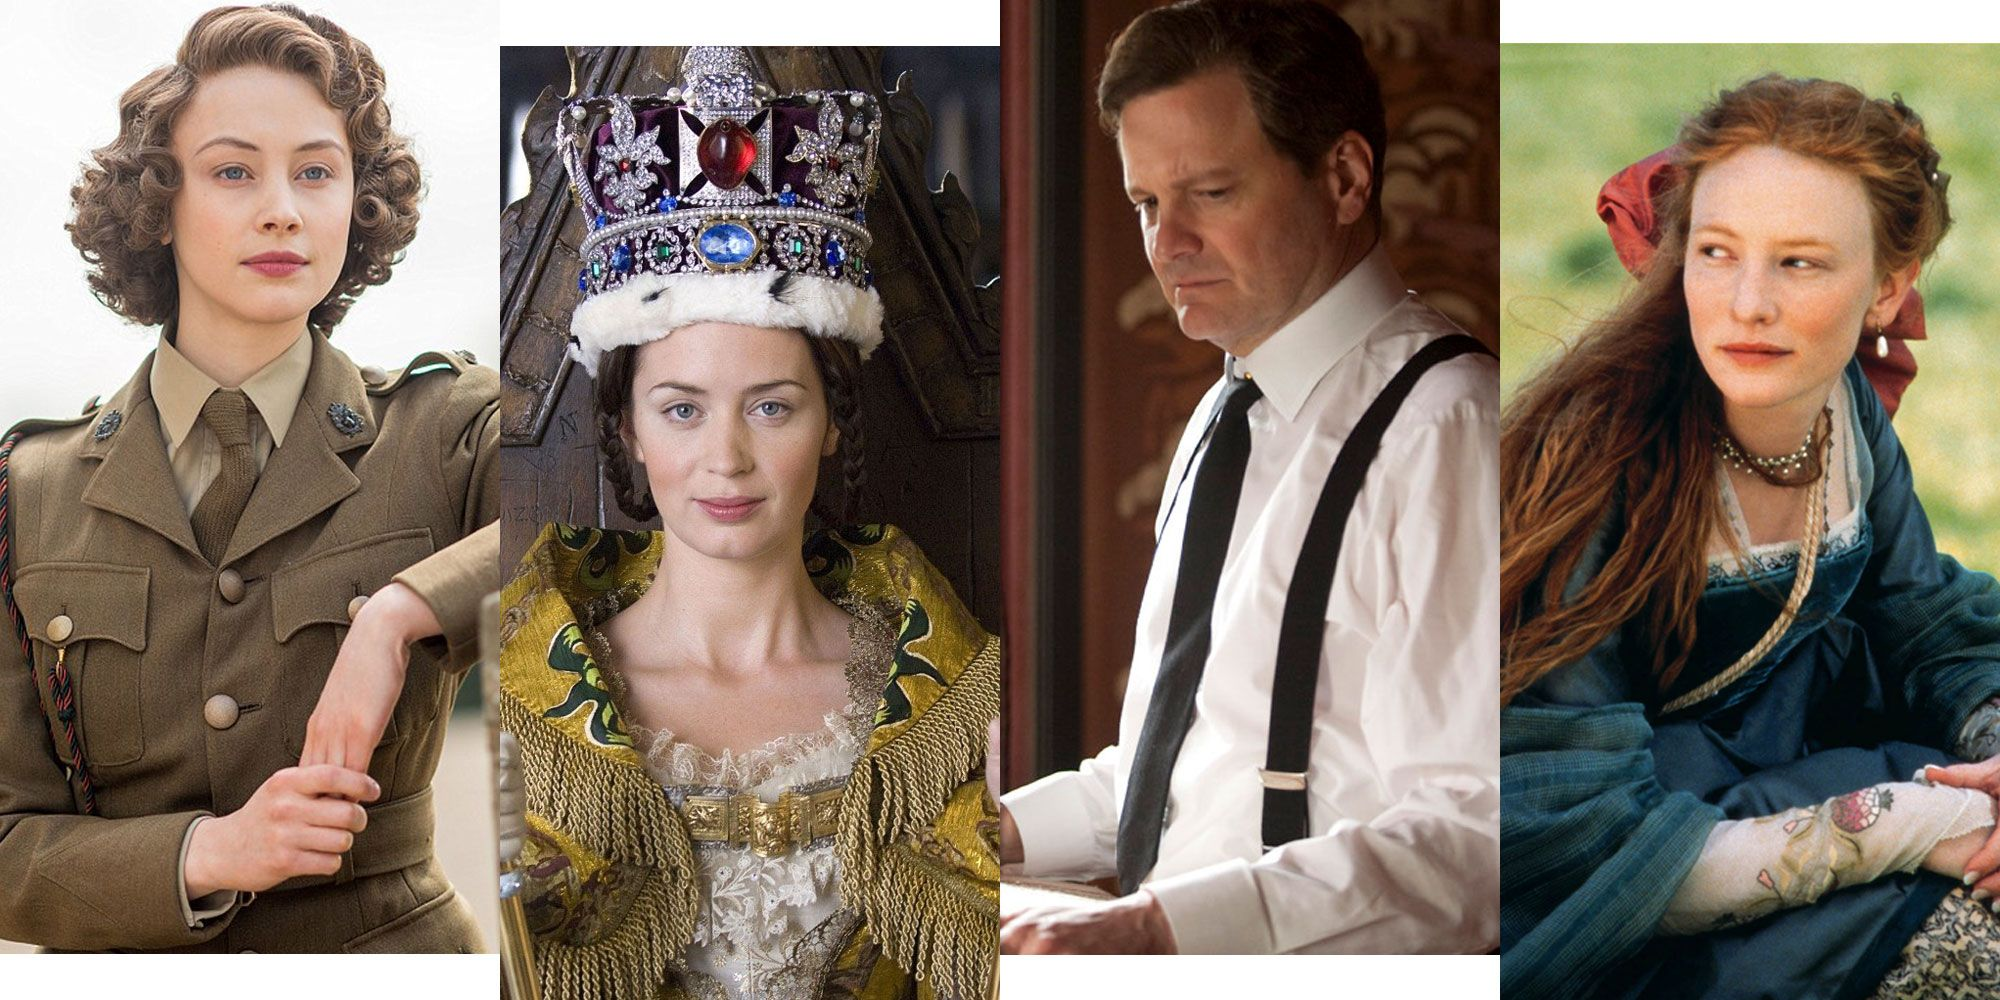 11 Best Movies About Royal Family - Films Like The Crown